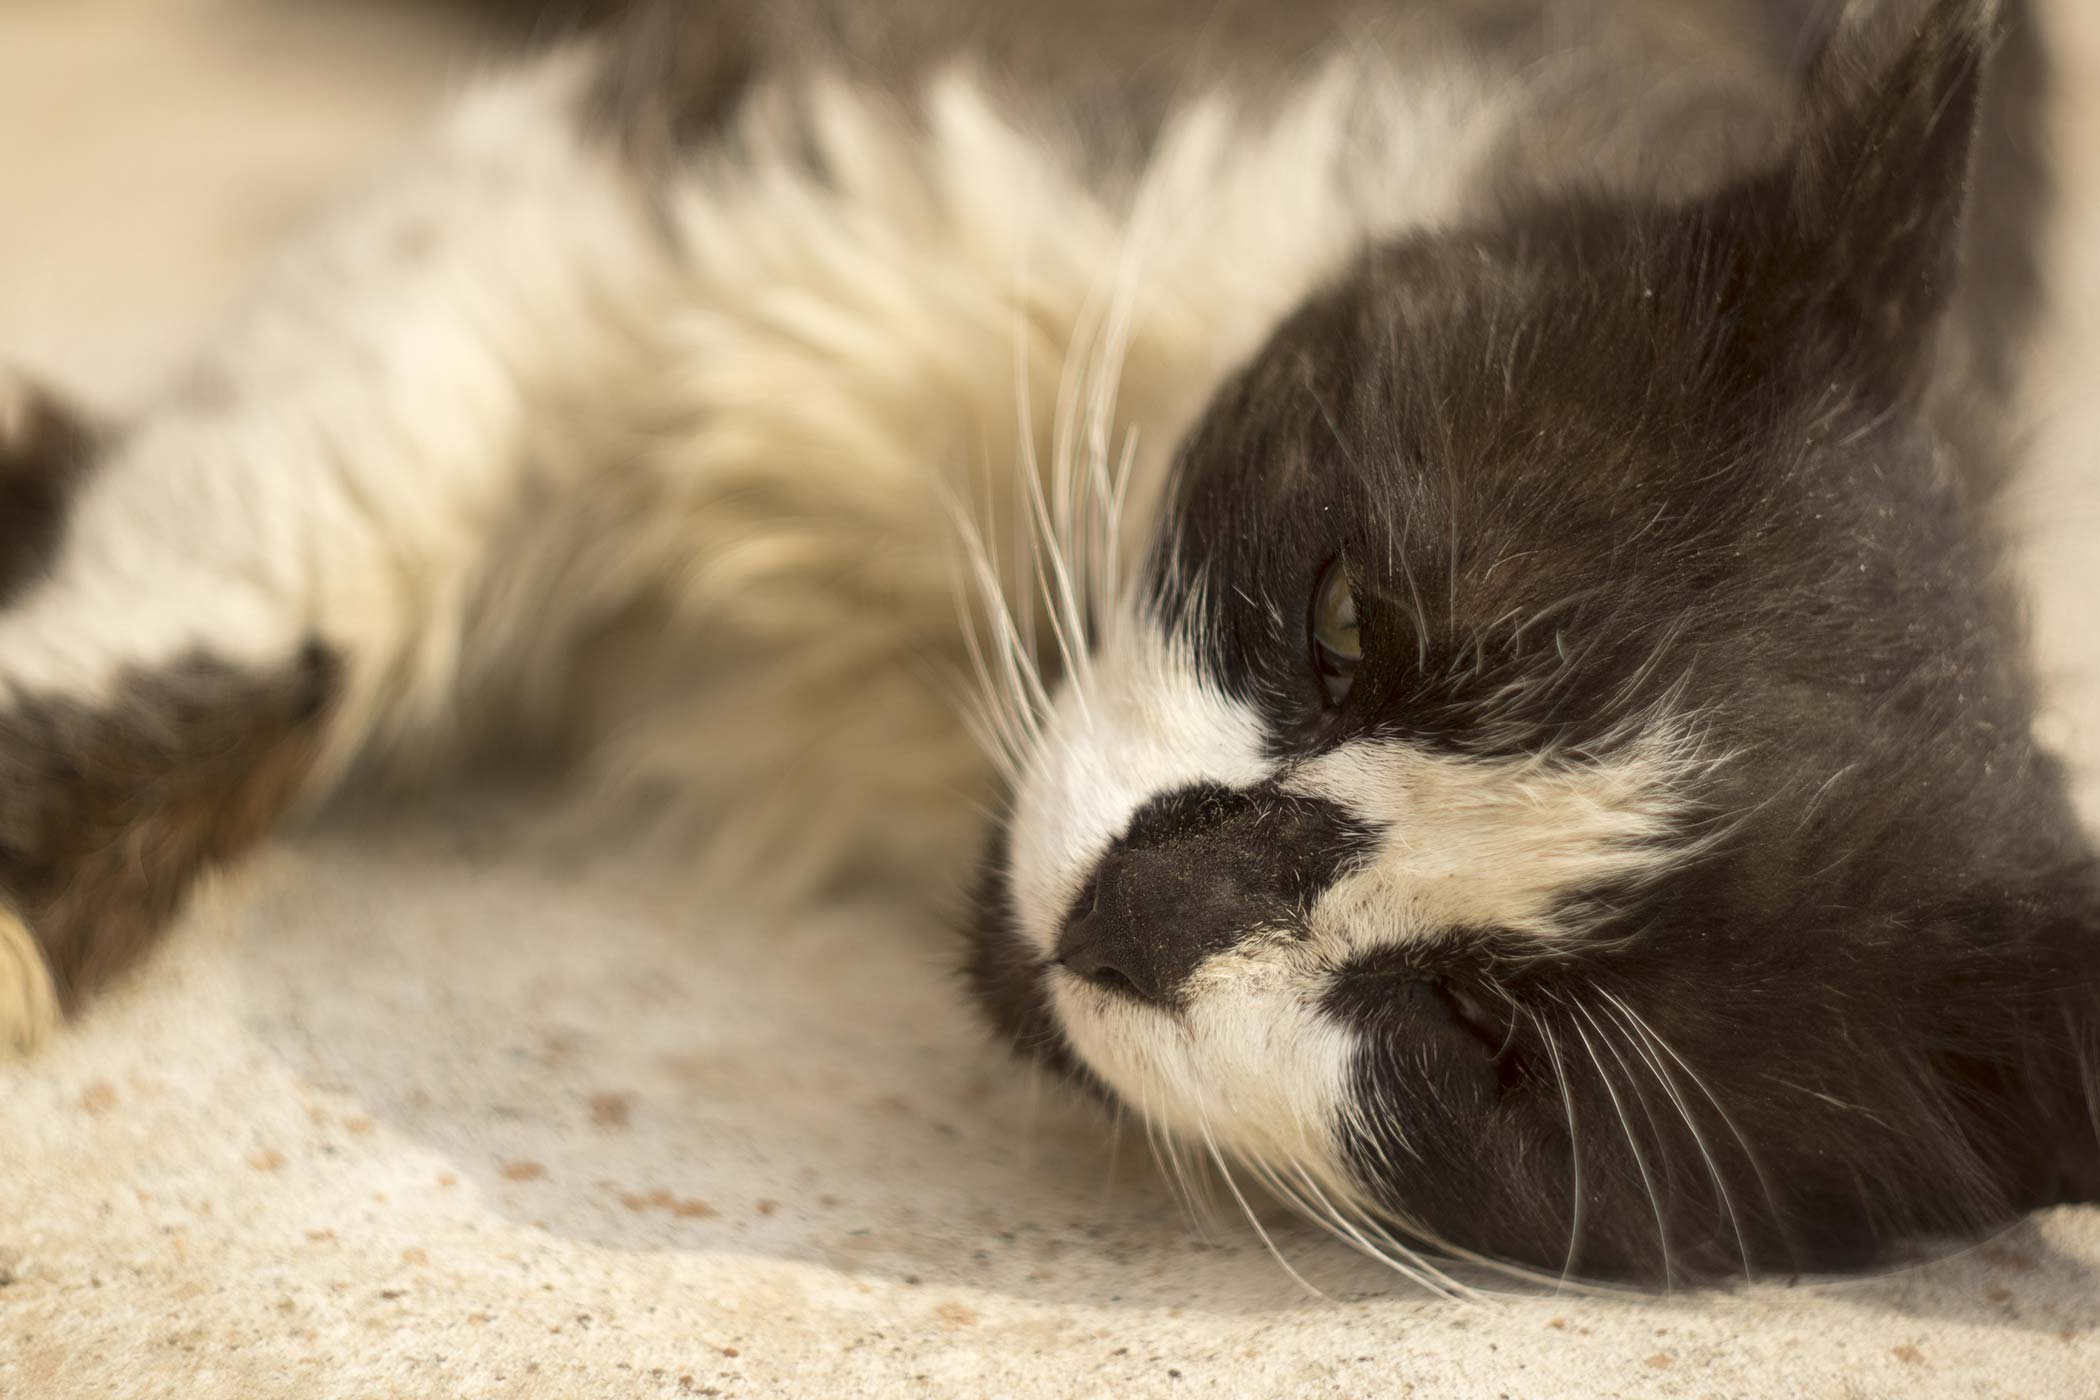 Excessive Potassium in the Blood in Cats